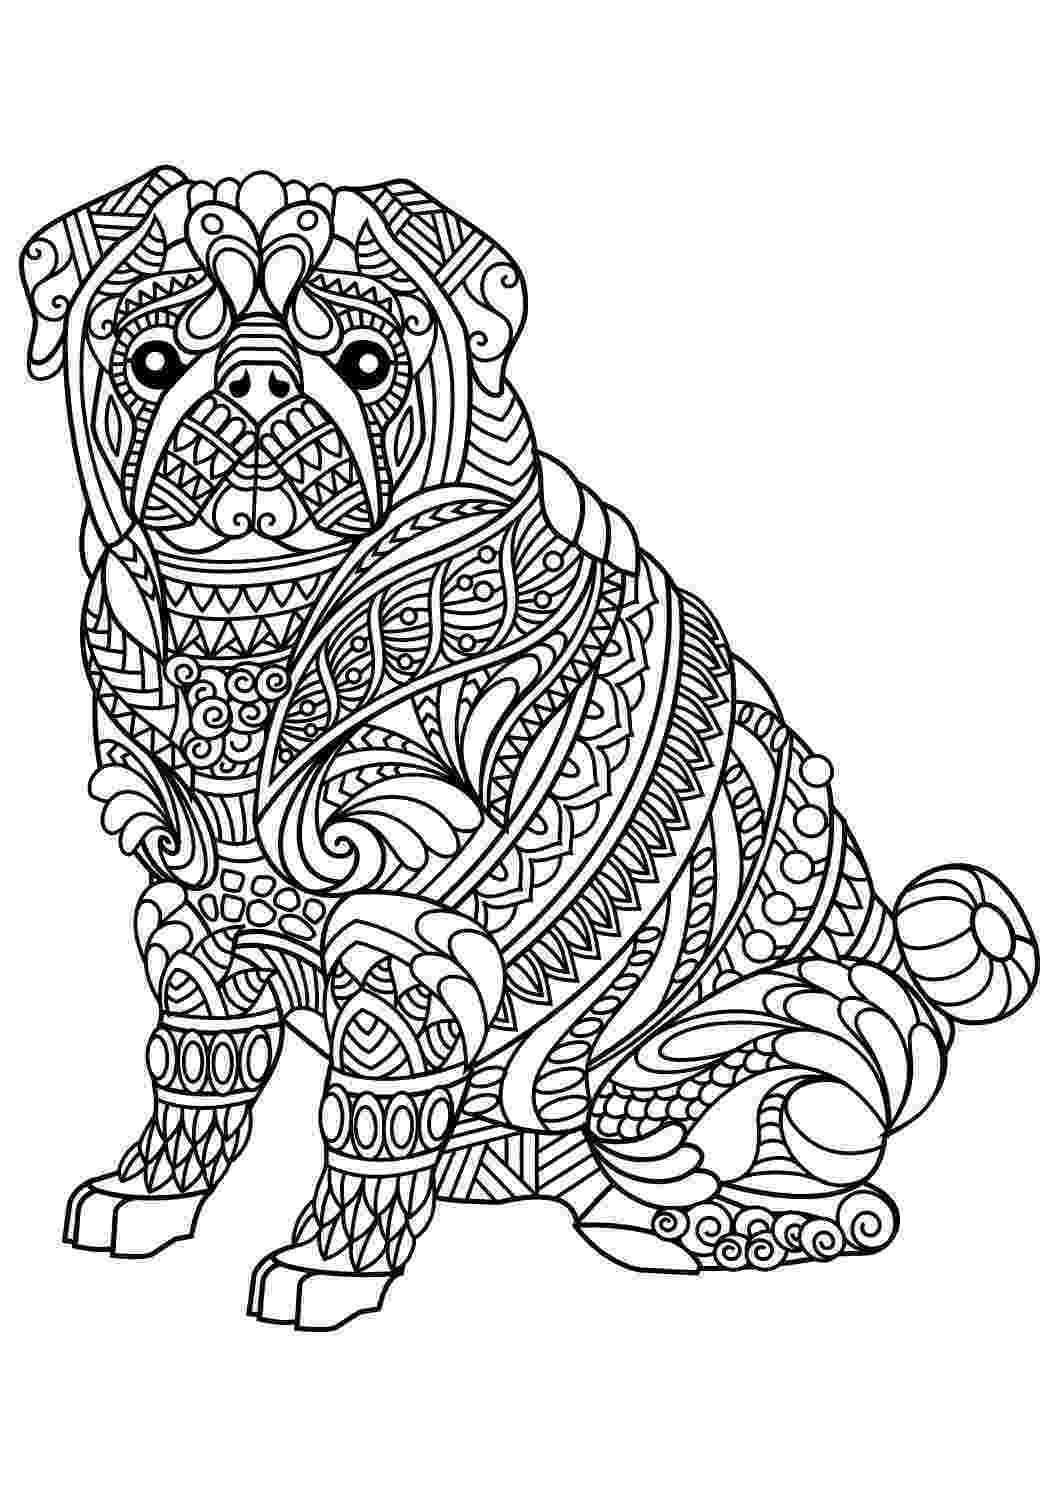 adult coloring pages animals adult coloring pages animals best coloring pages for kids pages animals coloring adult